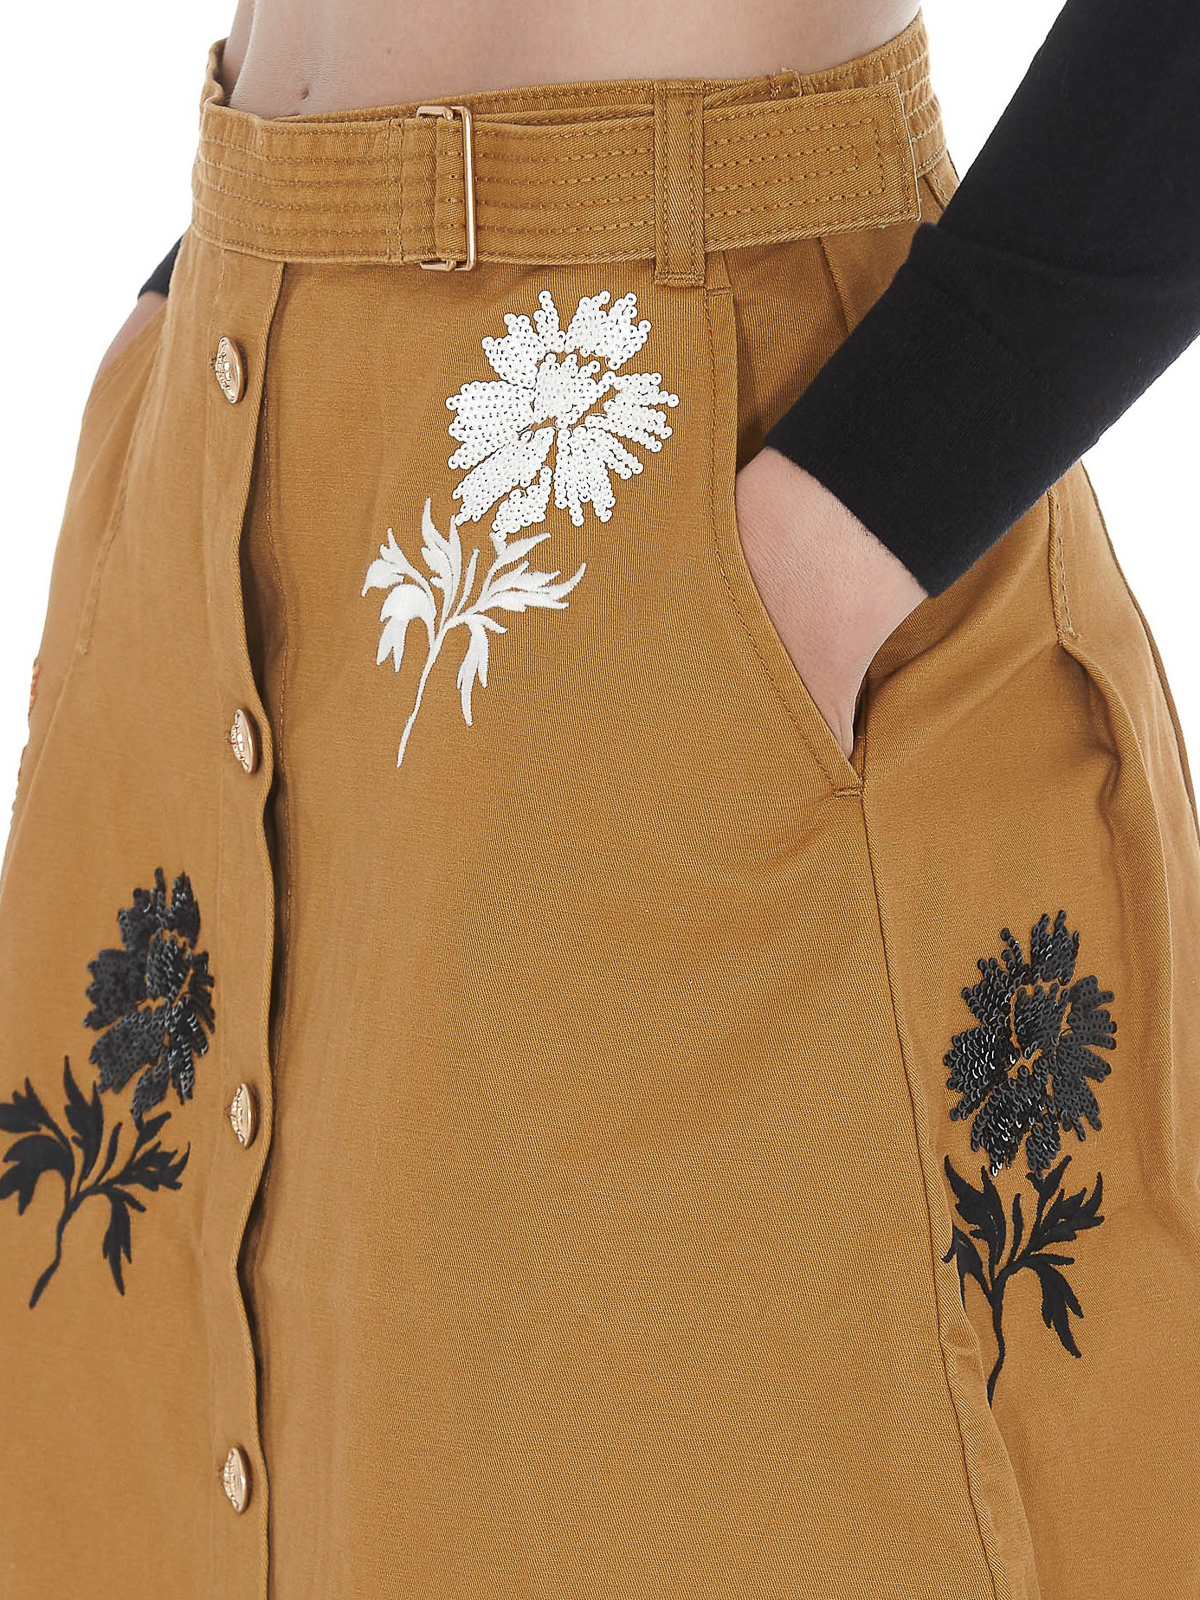 Tory Burch Flower Embroidery Embellished Cotton Skirt Knee Length Skirts Midi 55664261